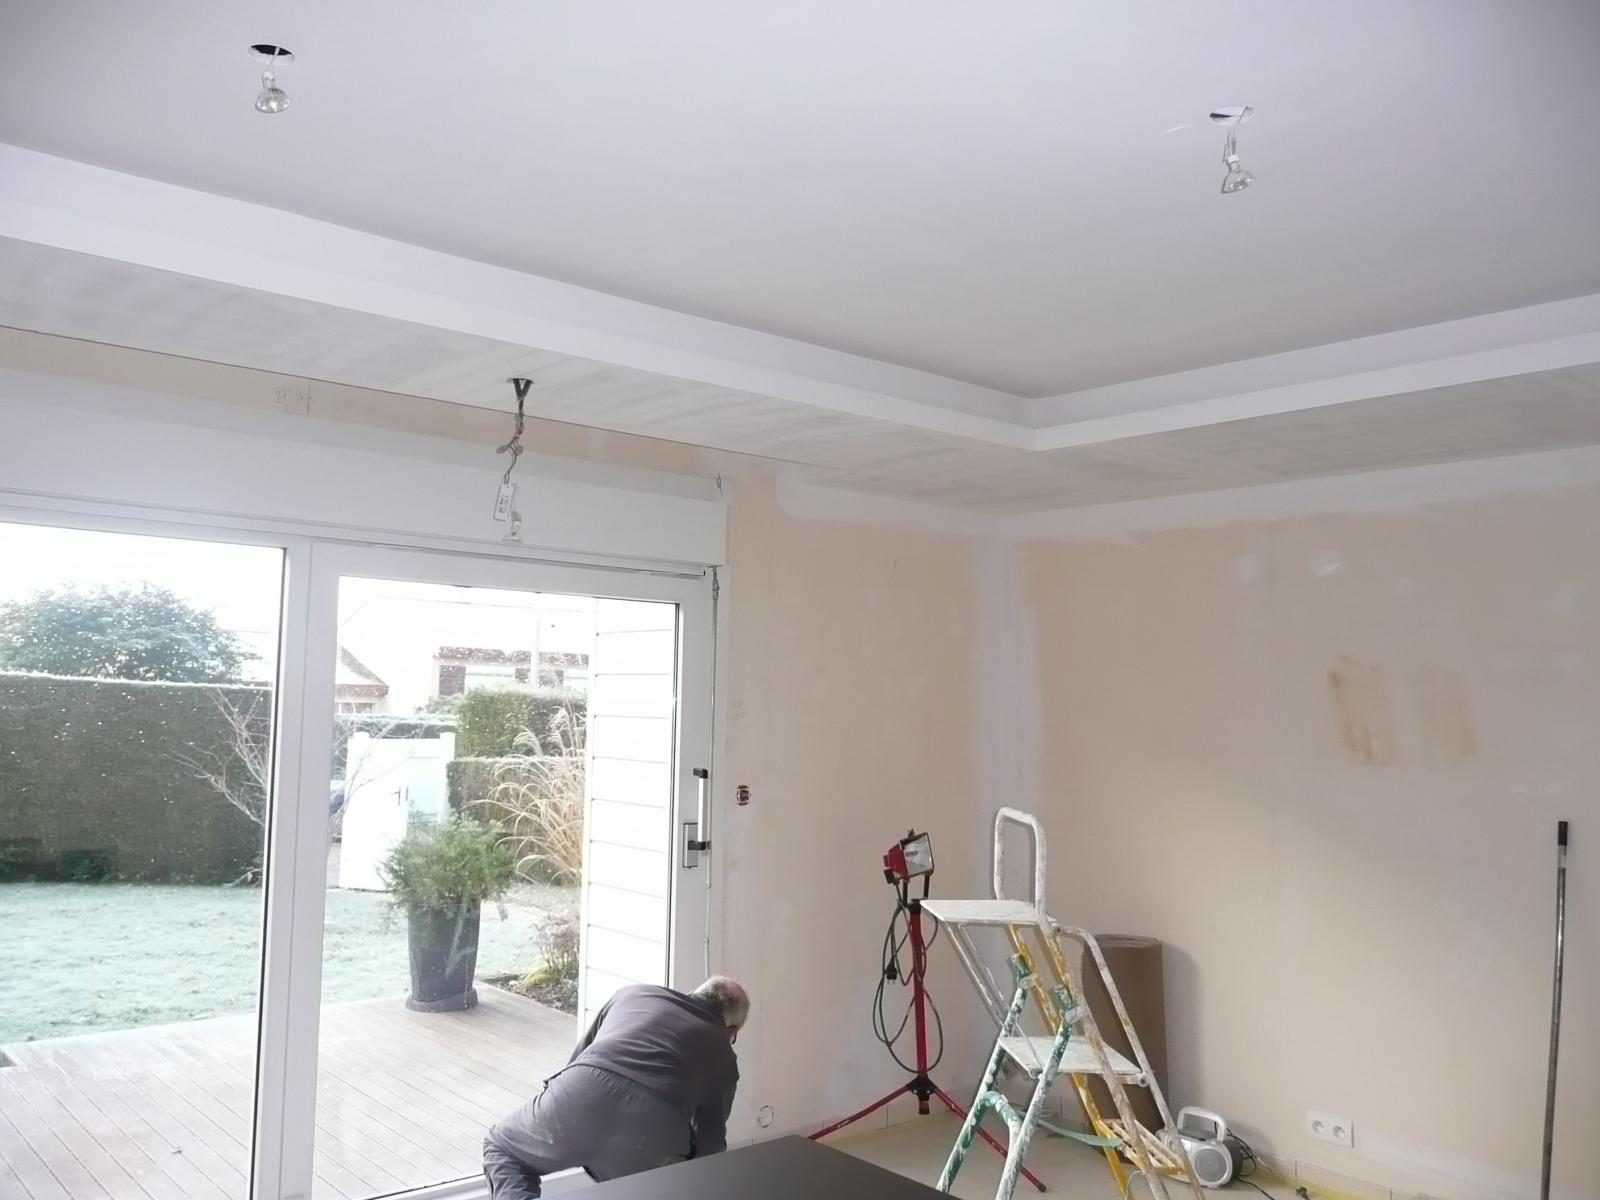 Turbo plafond et coffrage de volets roulants XA36